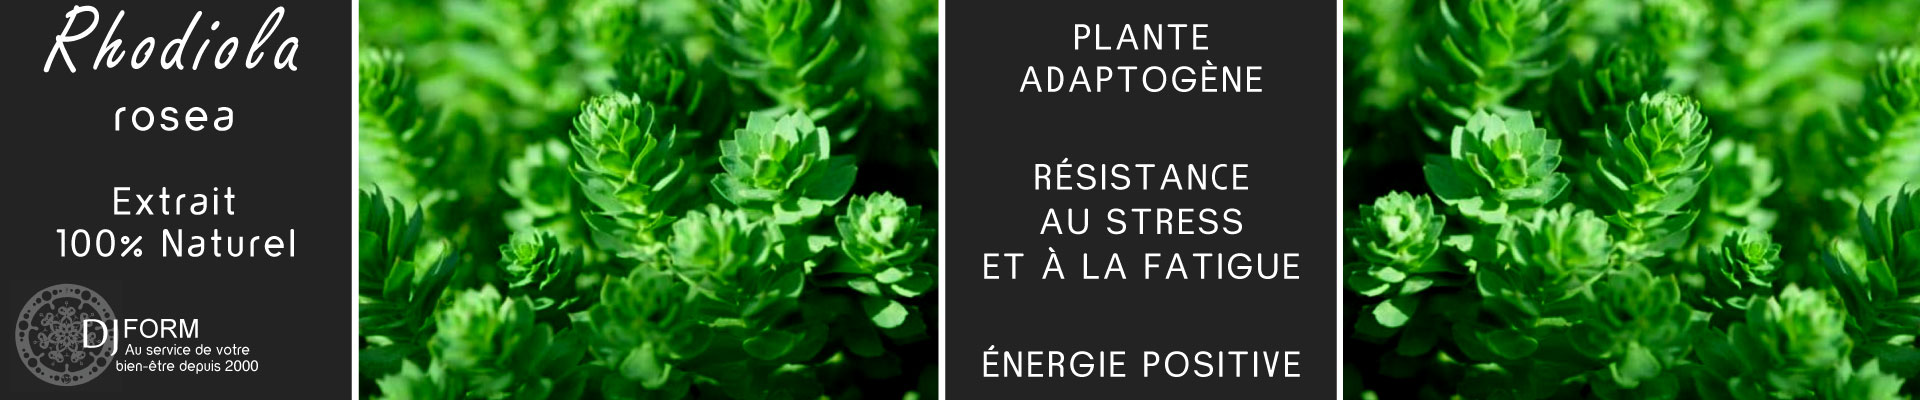 Rhodiola rosea, plante adaptogène, stress, fatigue